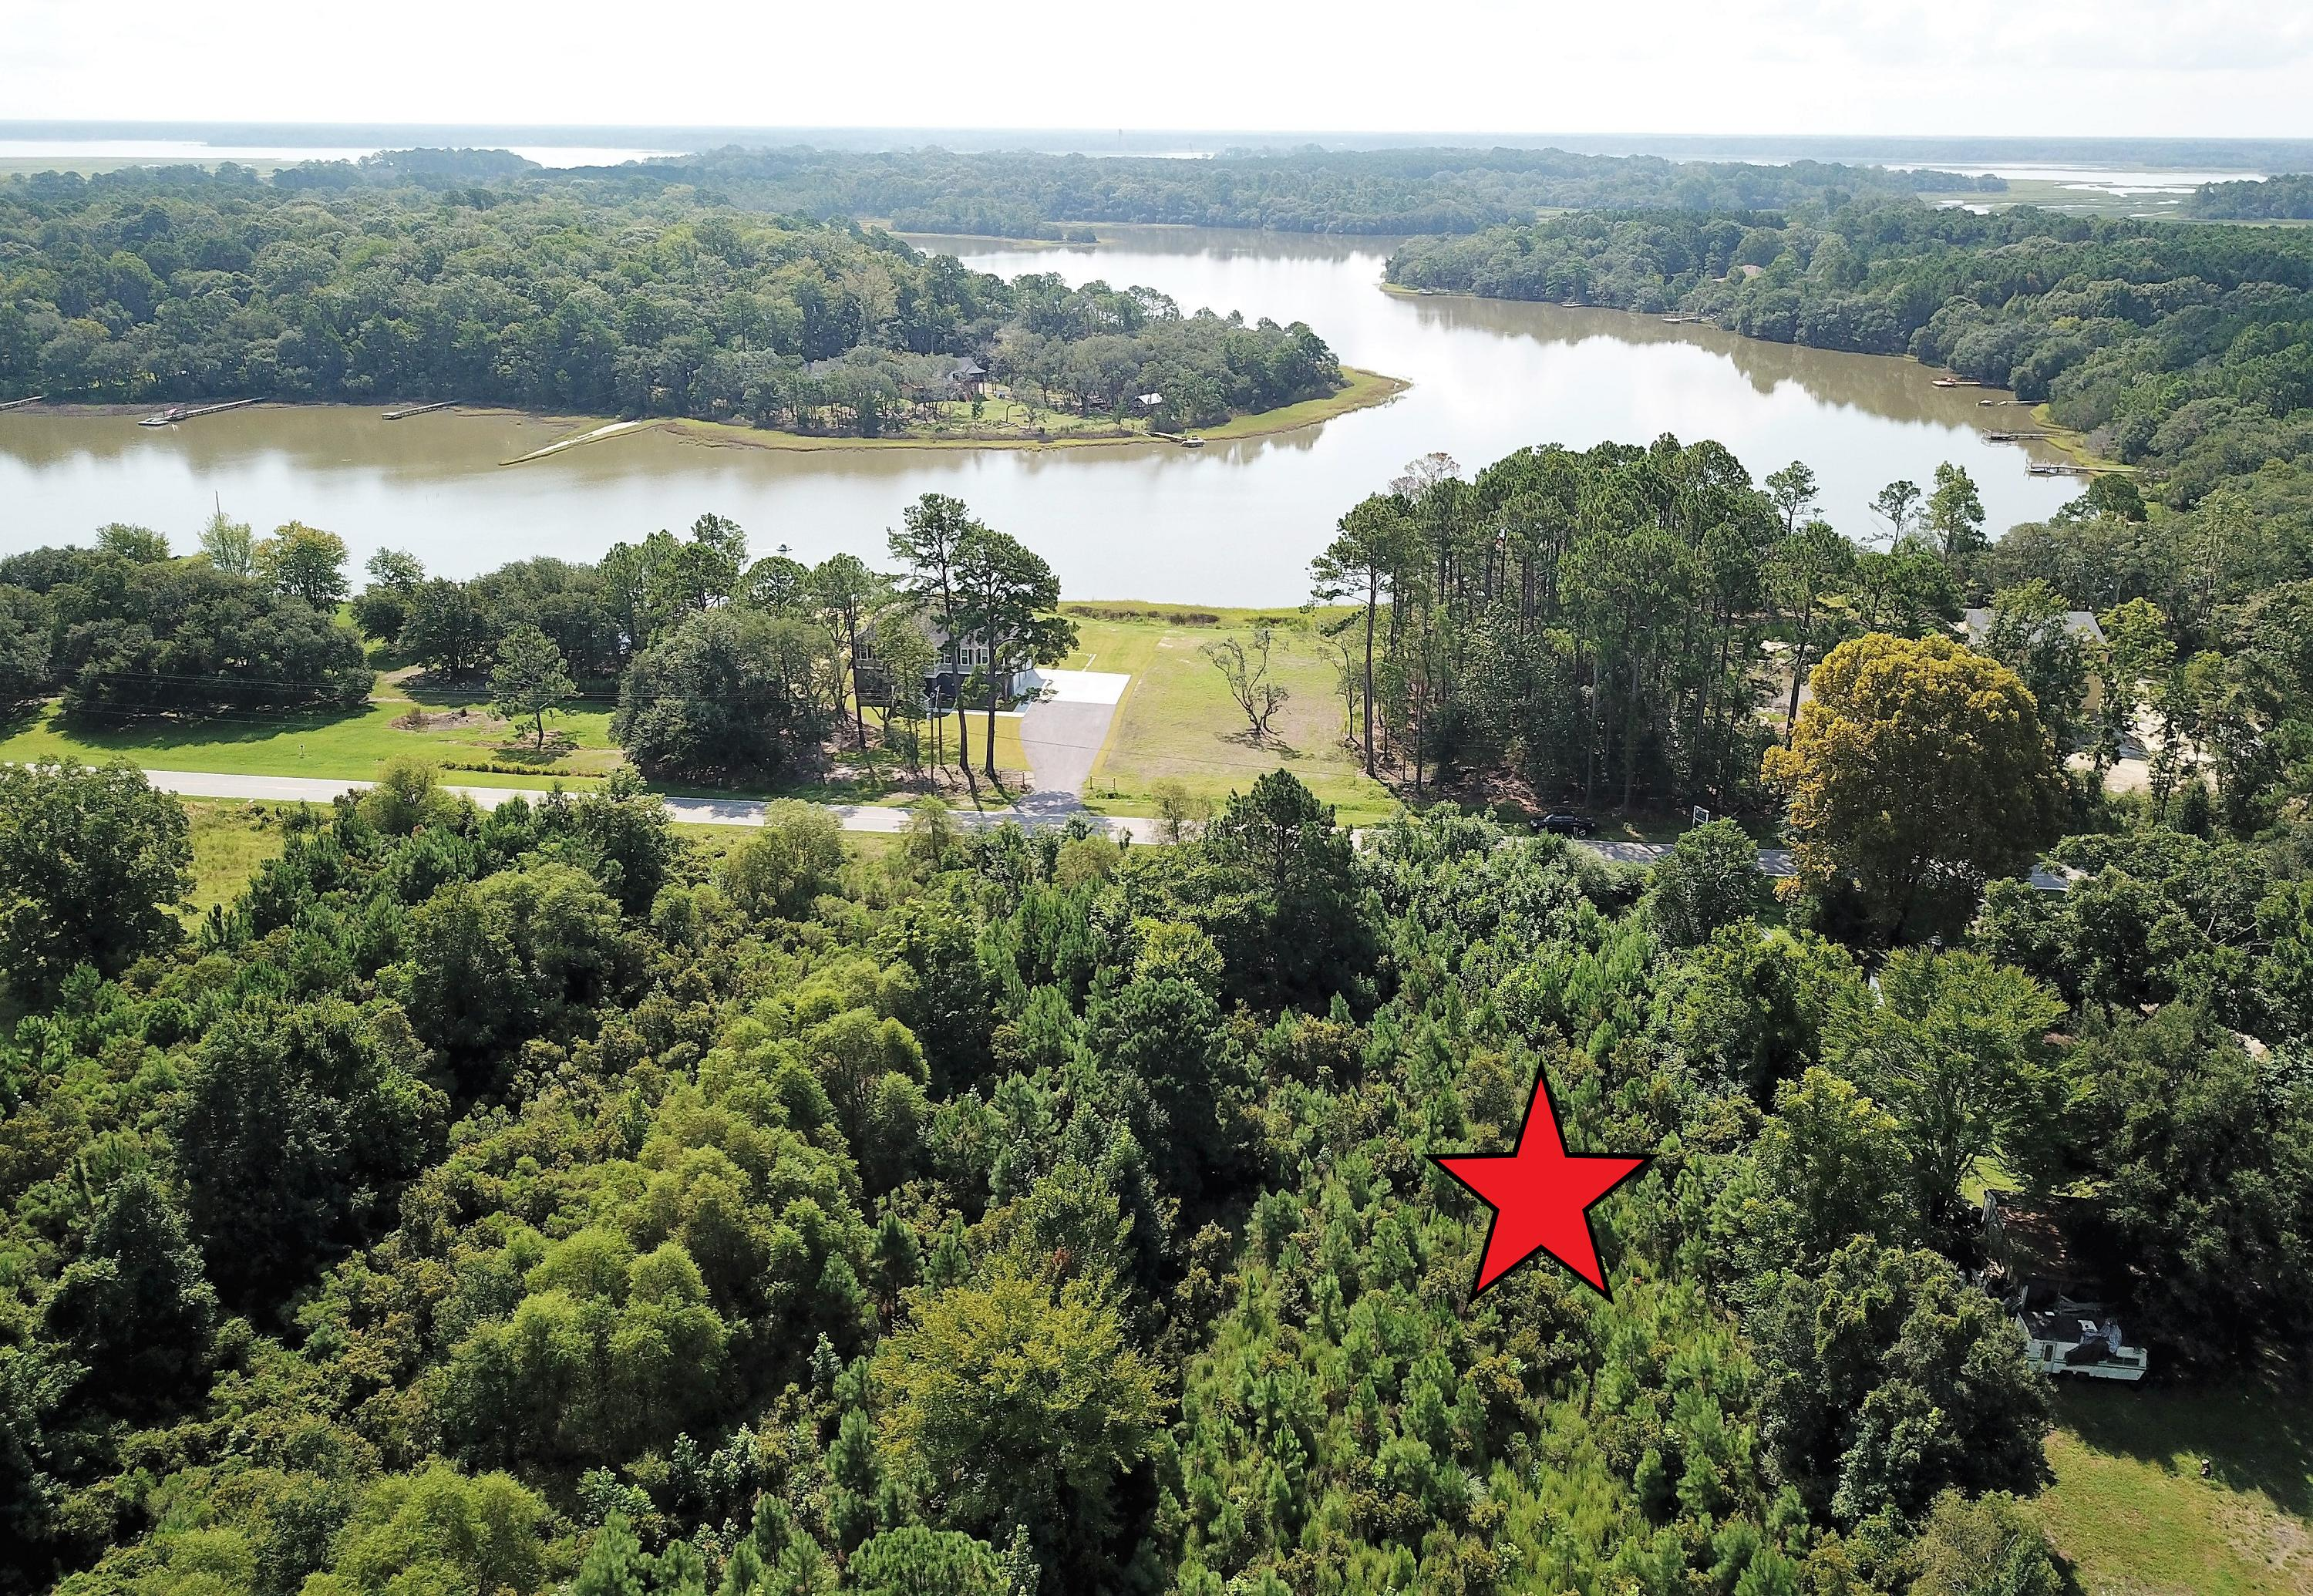 Lot 1 Ethel Post Office Road Meggett, SC 29449